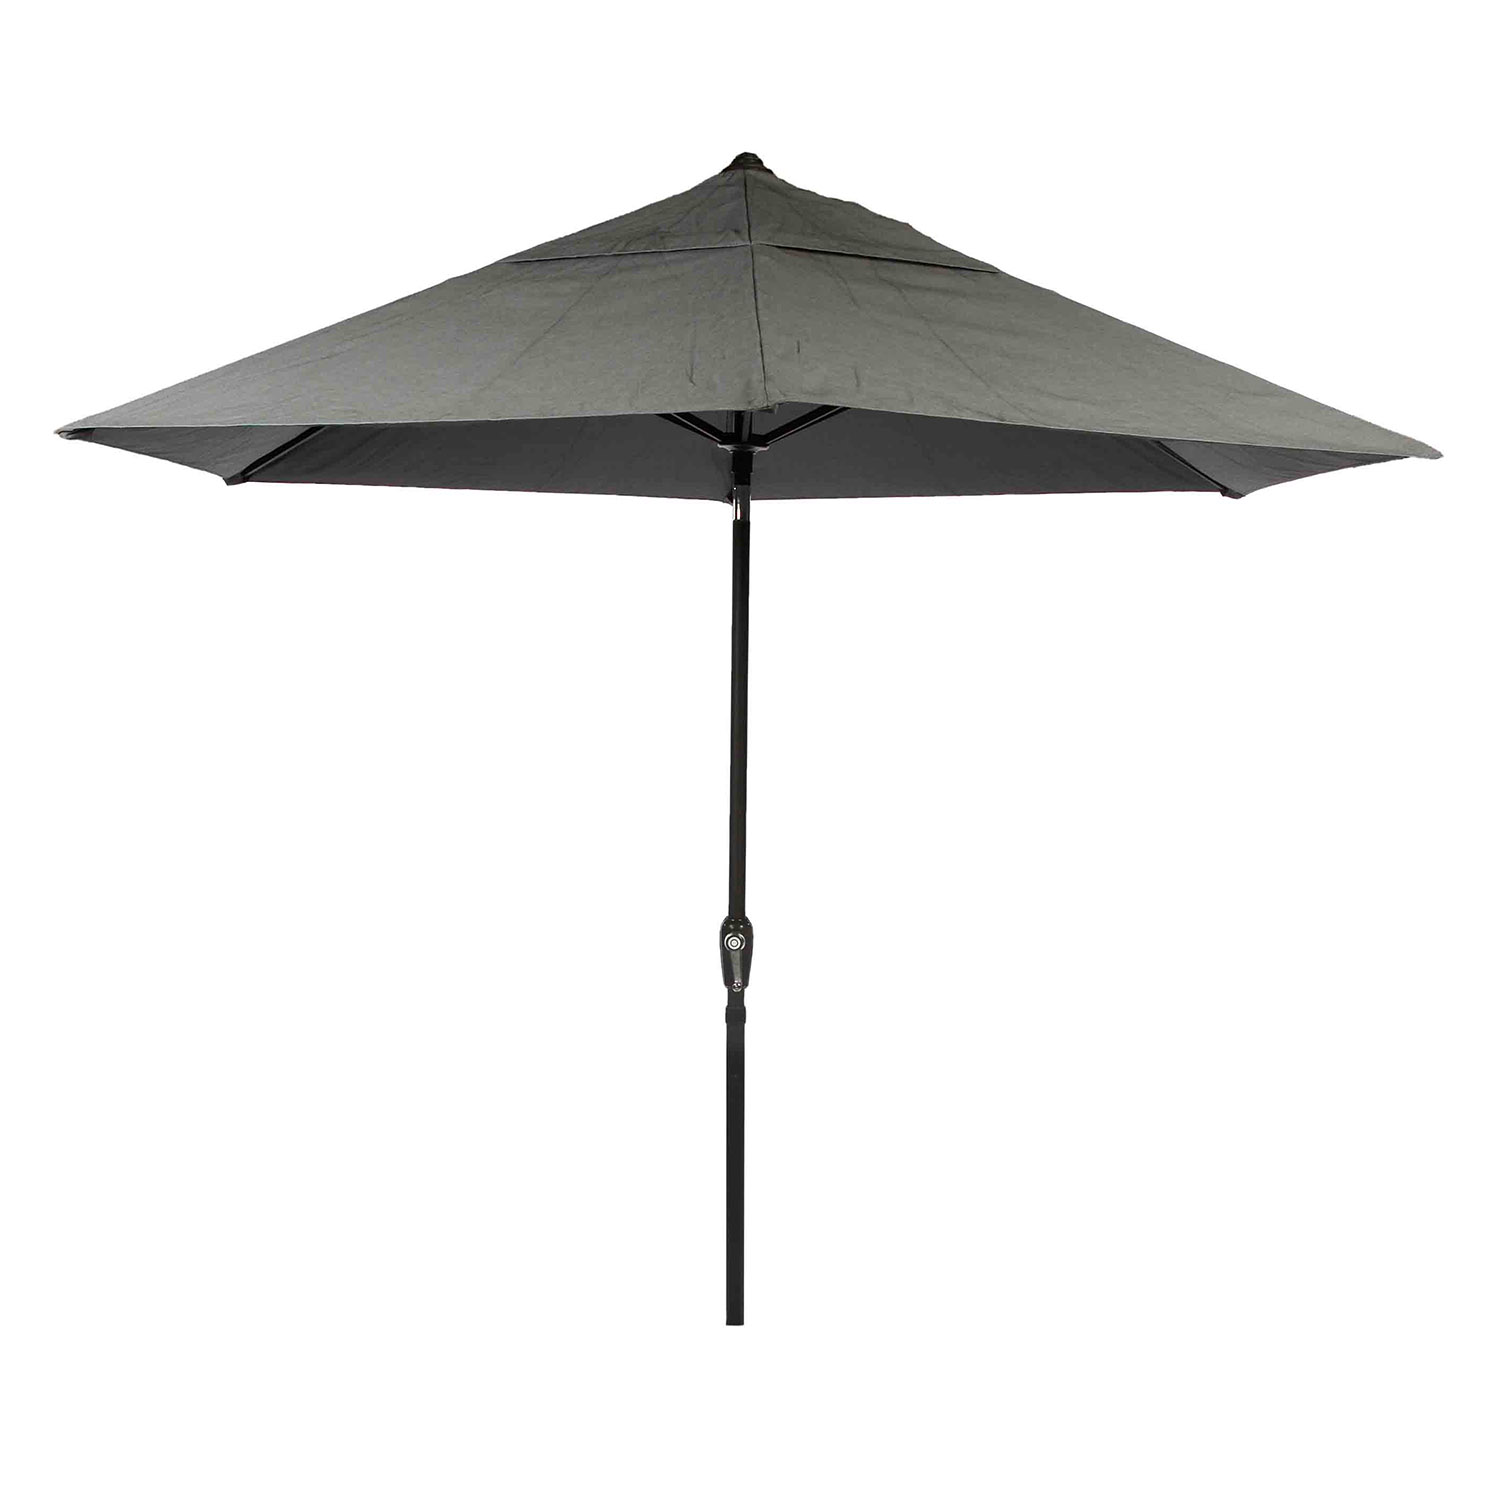 https://www.firstfurniture.co.uk/pub/media/catalog/product/L/G/LG_Outdoor_Living_Soleil_Beige_2_2m_Crank_and_Tilt_Parasol_1~43V.jpg